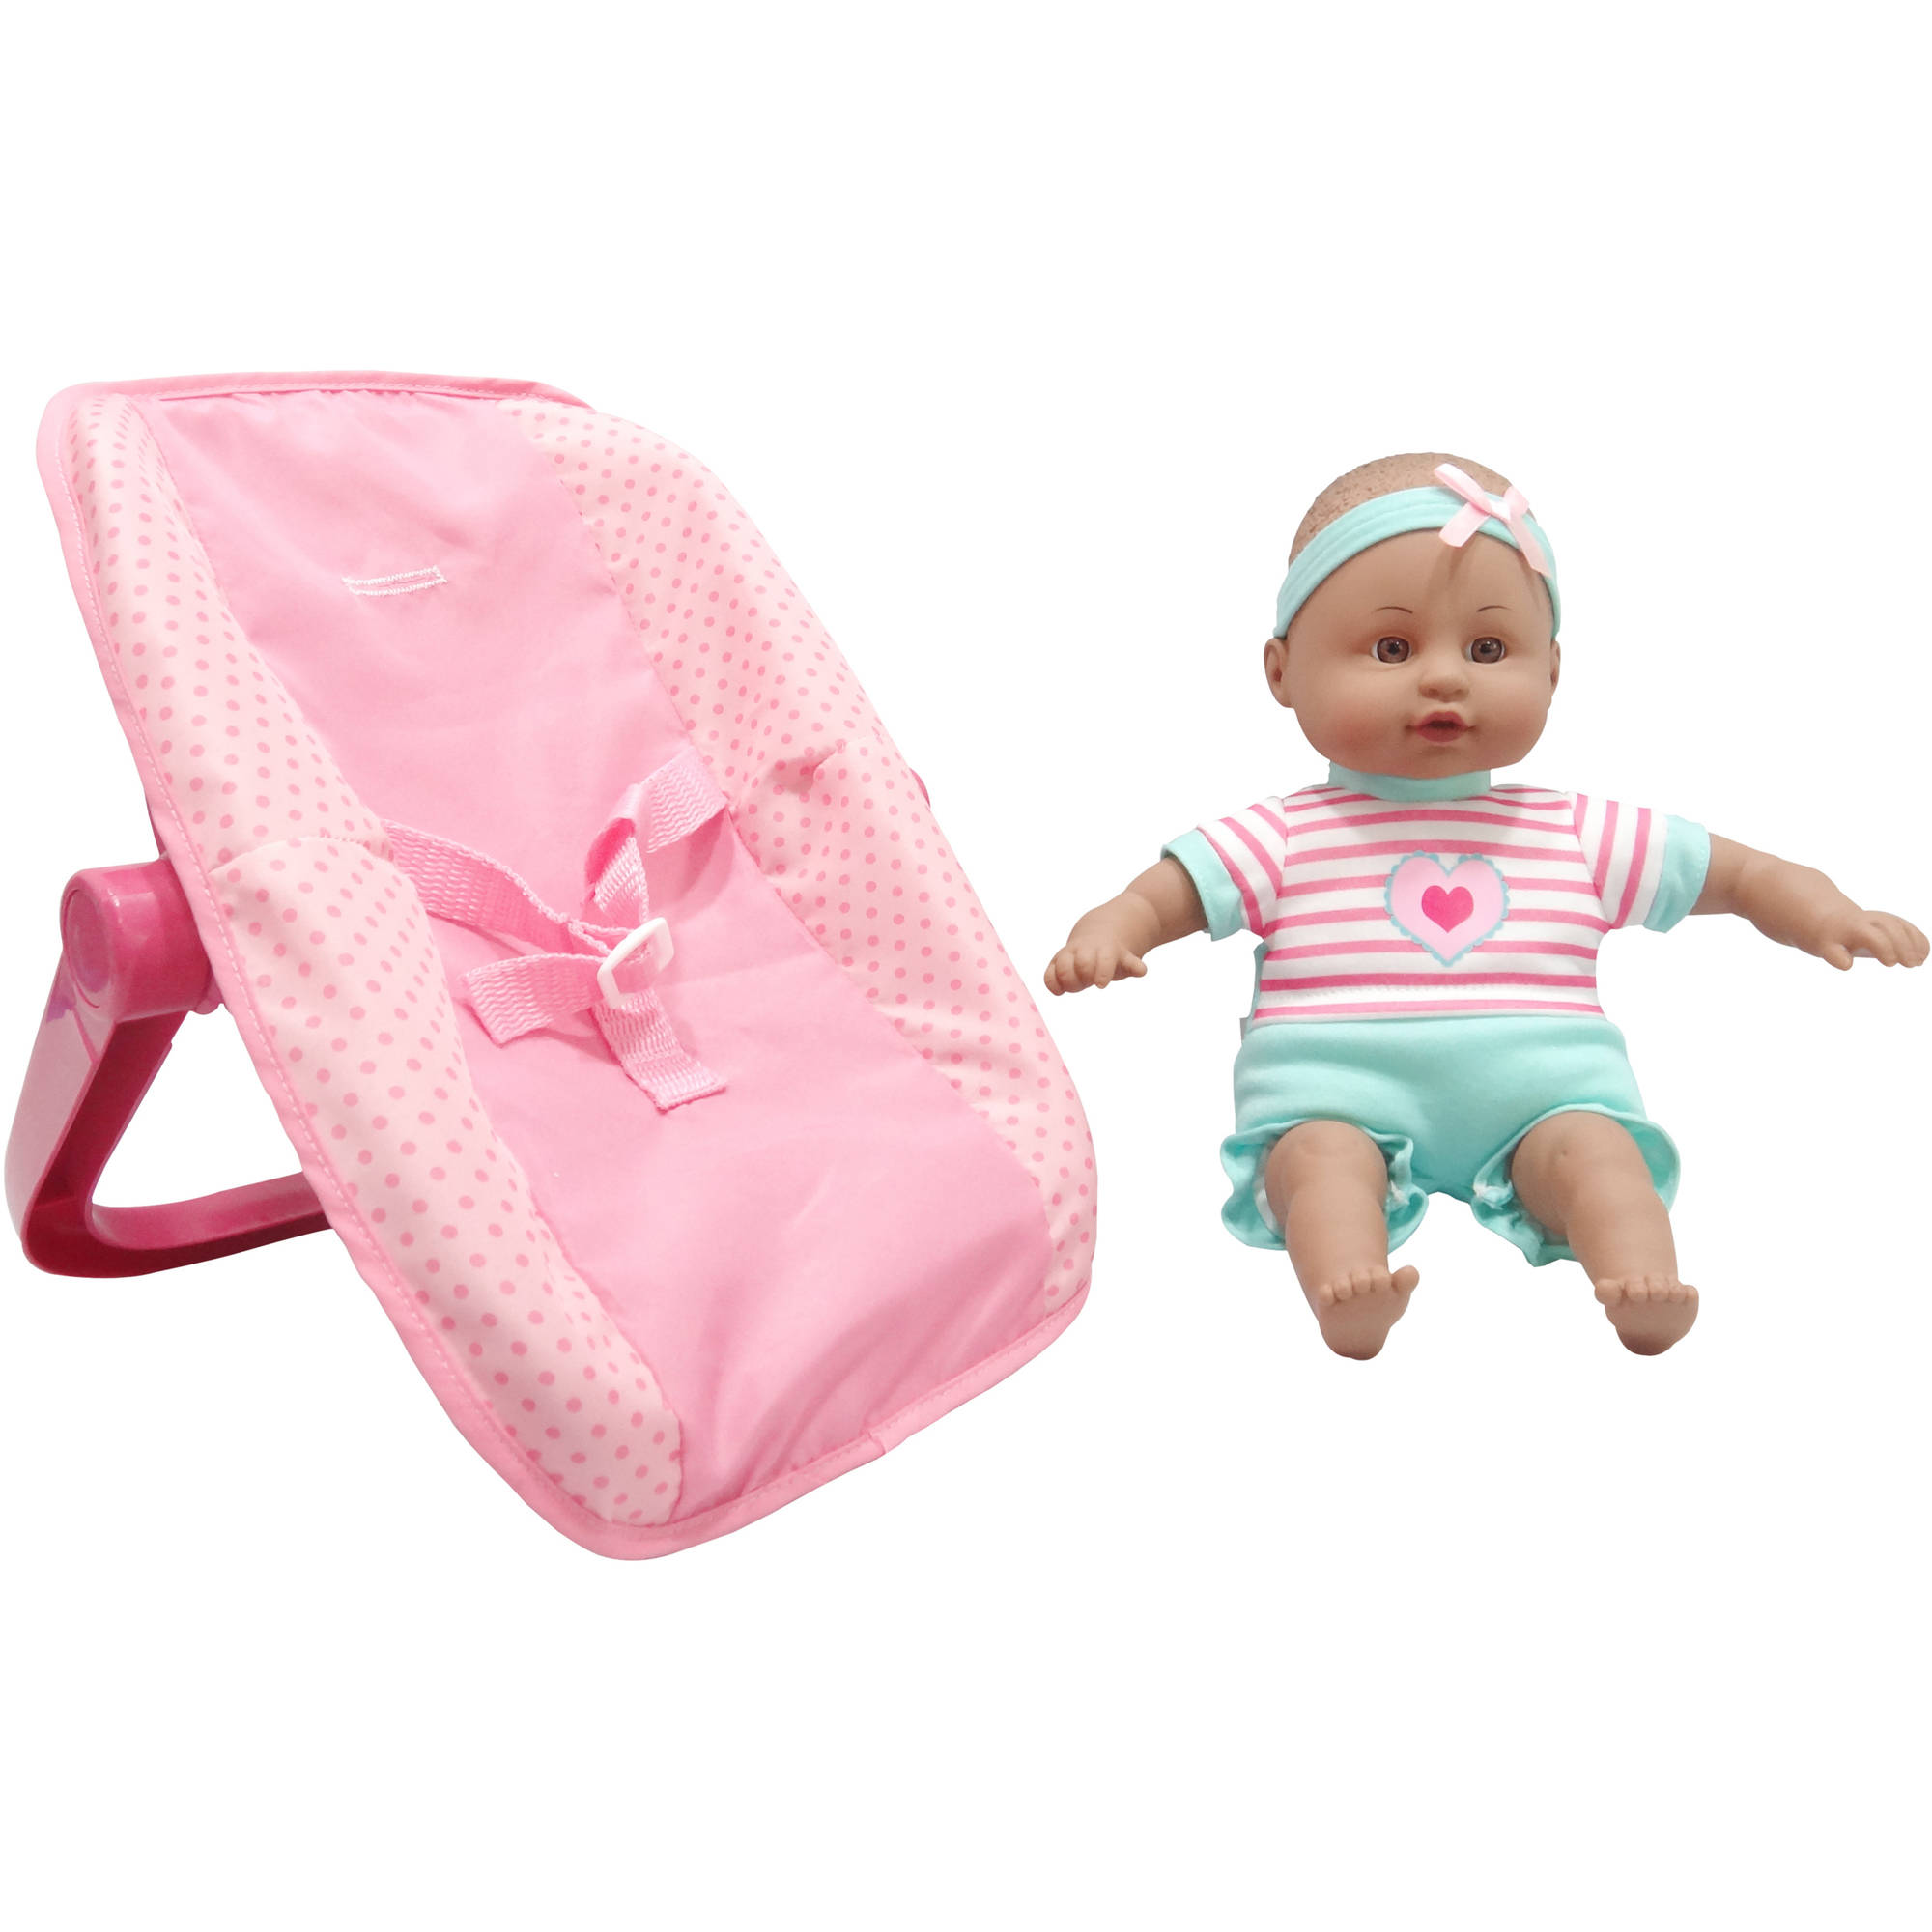 "My Sweet Love 13"" Baby with Plastic Carrier, AA, Teal"